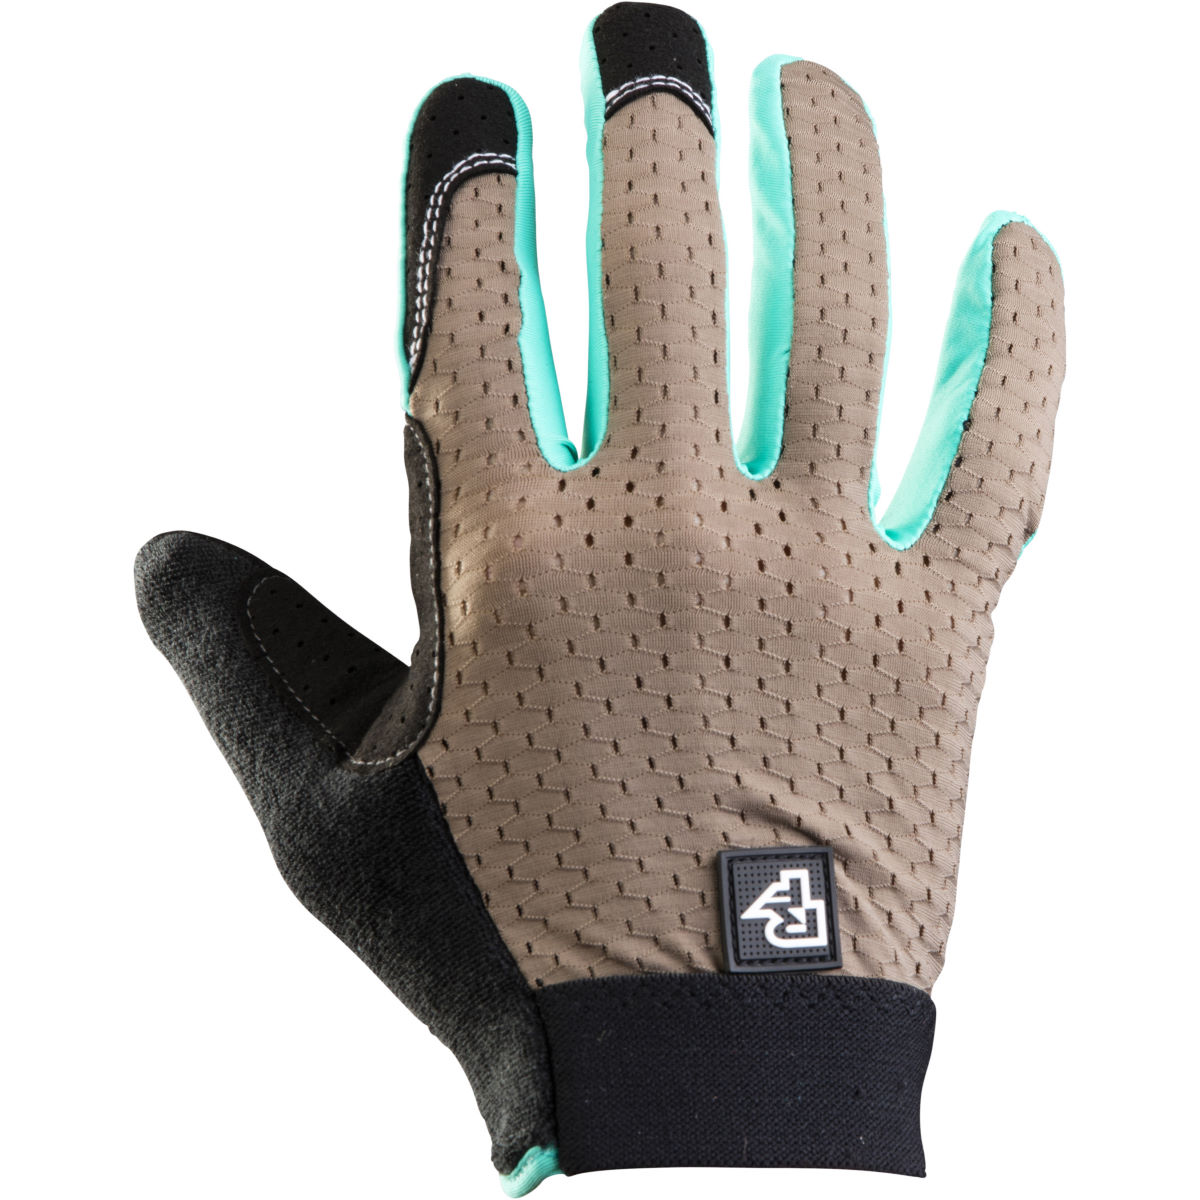 Gants Race Face Stage - Medium Dune Gants à doigts longs